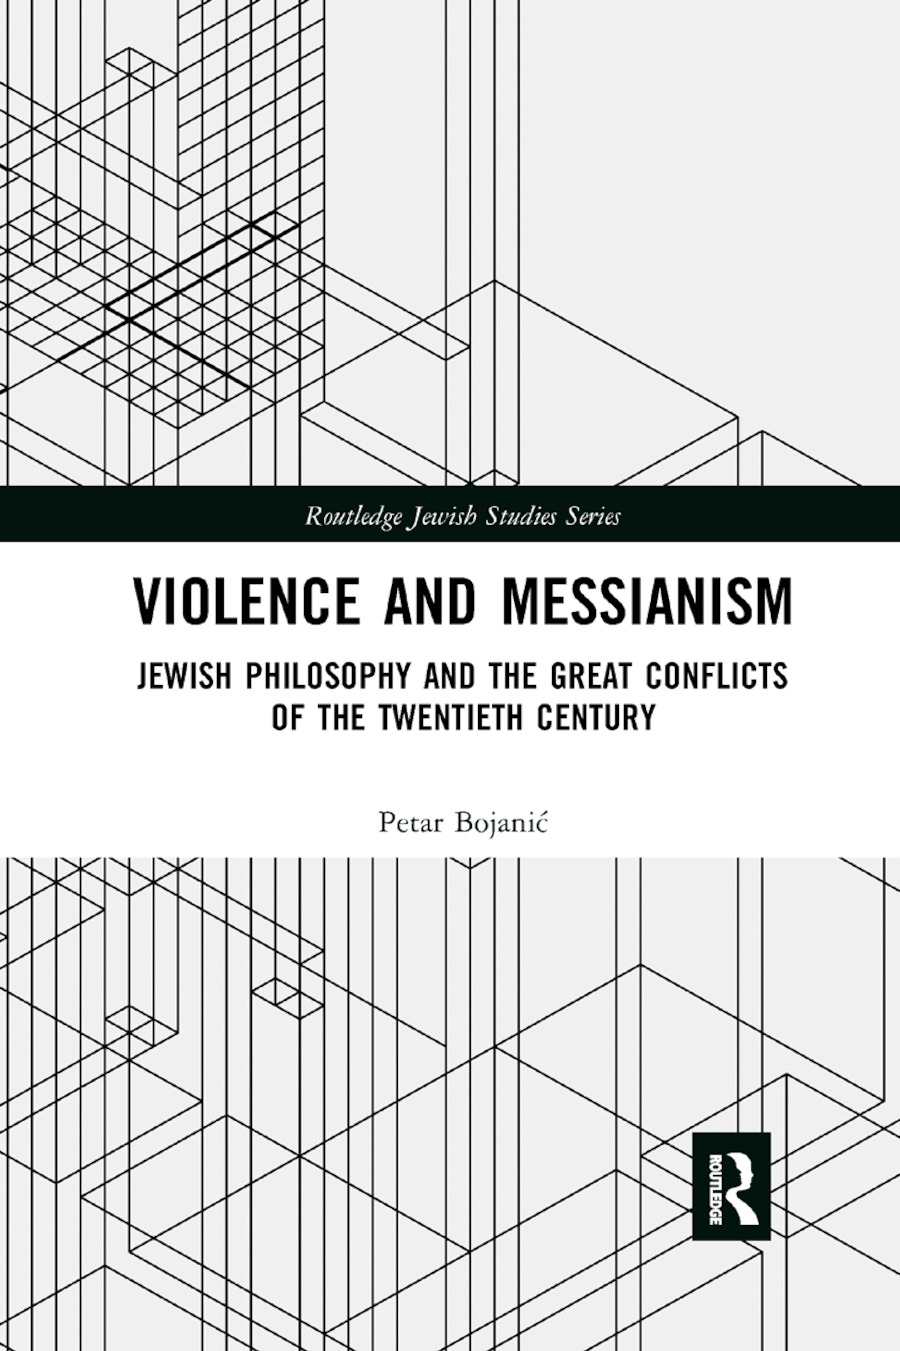 Violence and Messianism: Jewish Philosophy and the Great Conflicts of the Twentieth Century book cover